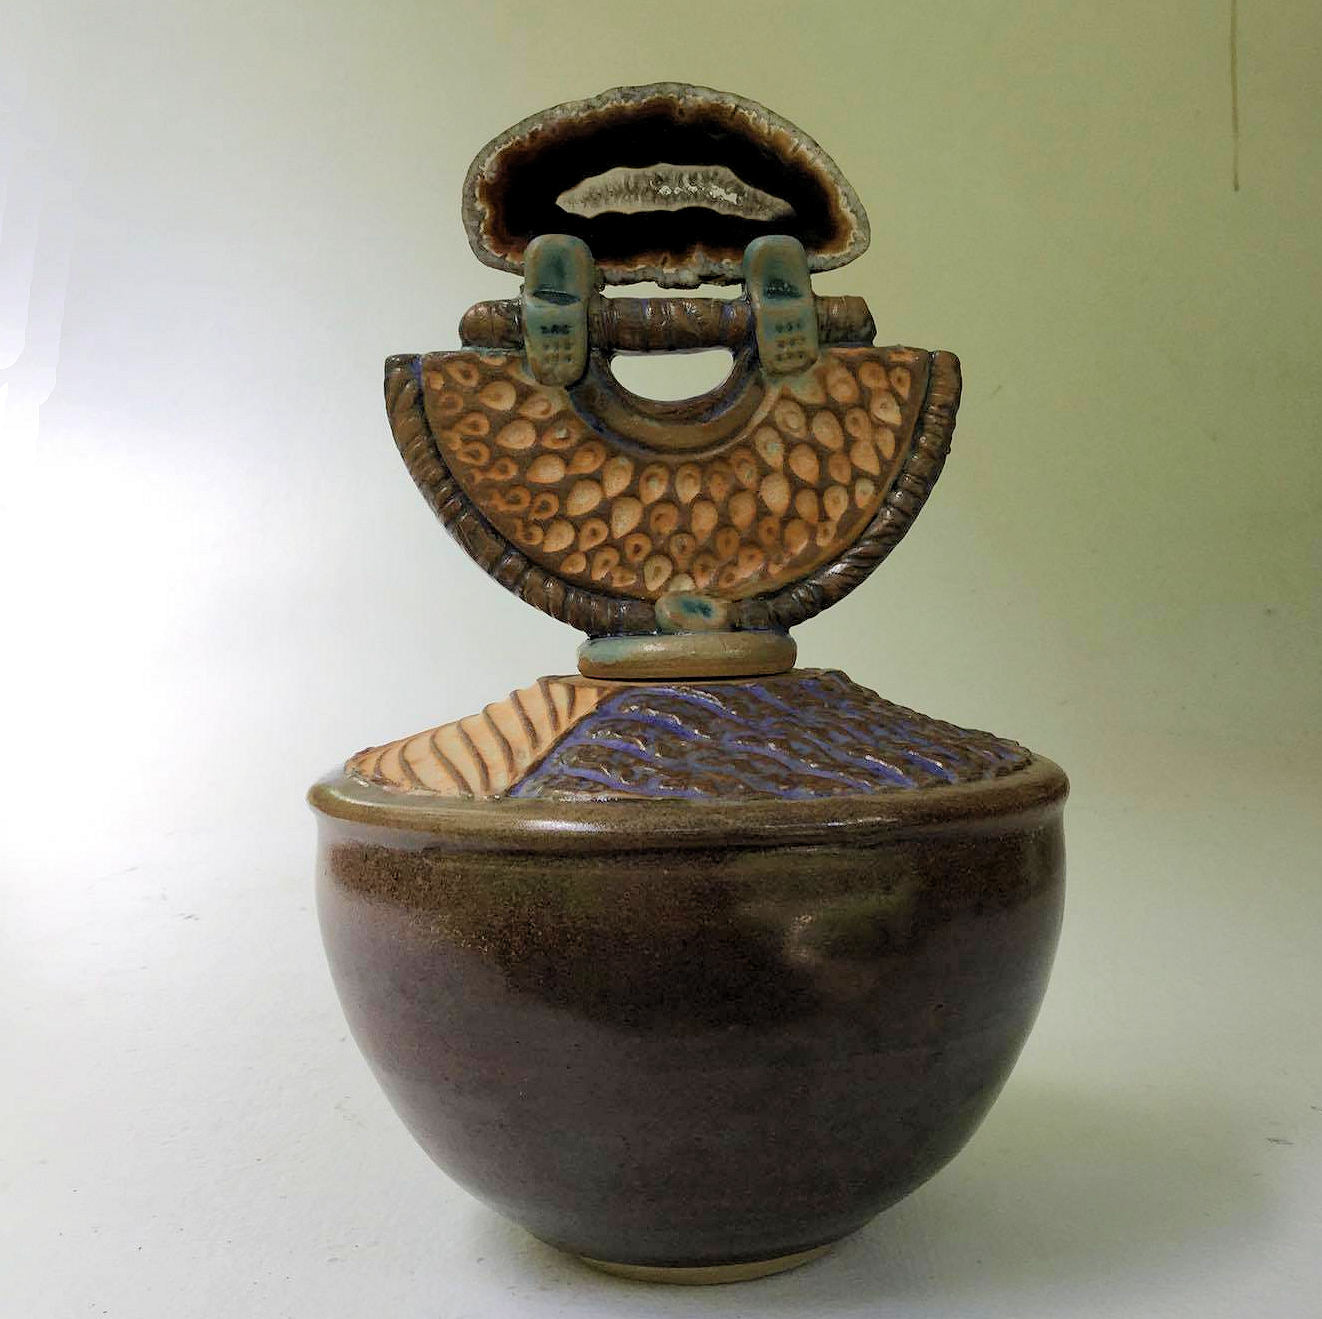 Pottery Vessel with Agate Lid